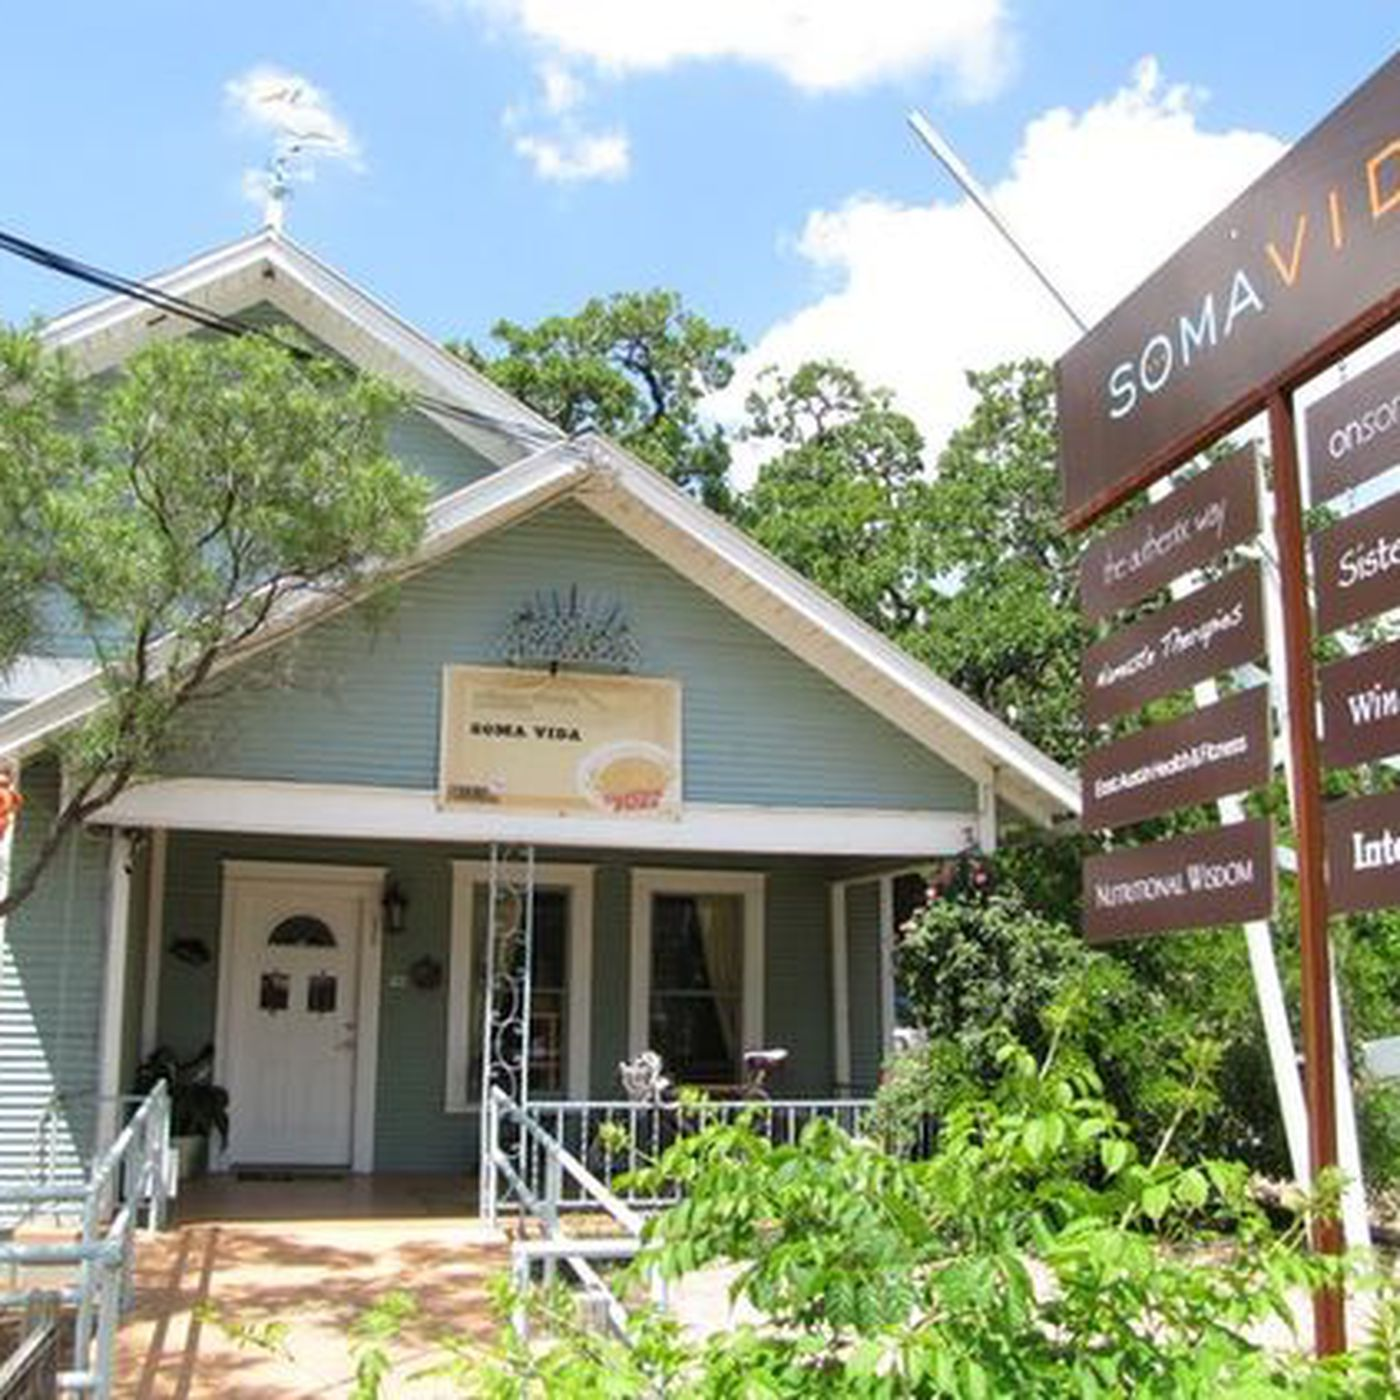 New East Austin landmark could be in the works - Curbed Austin